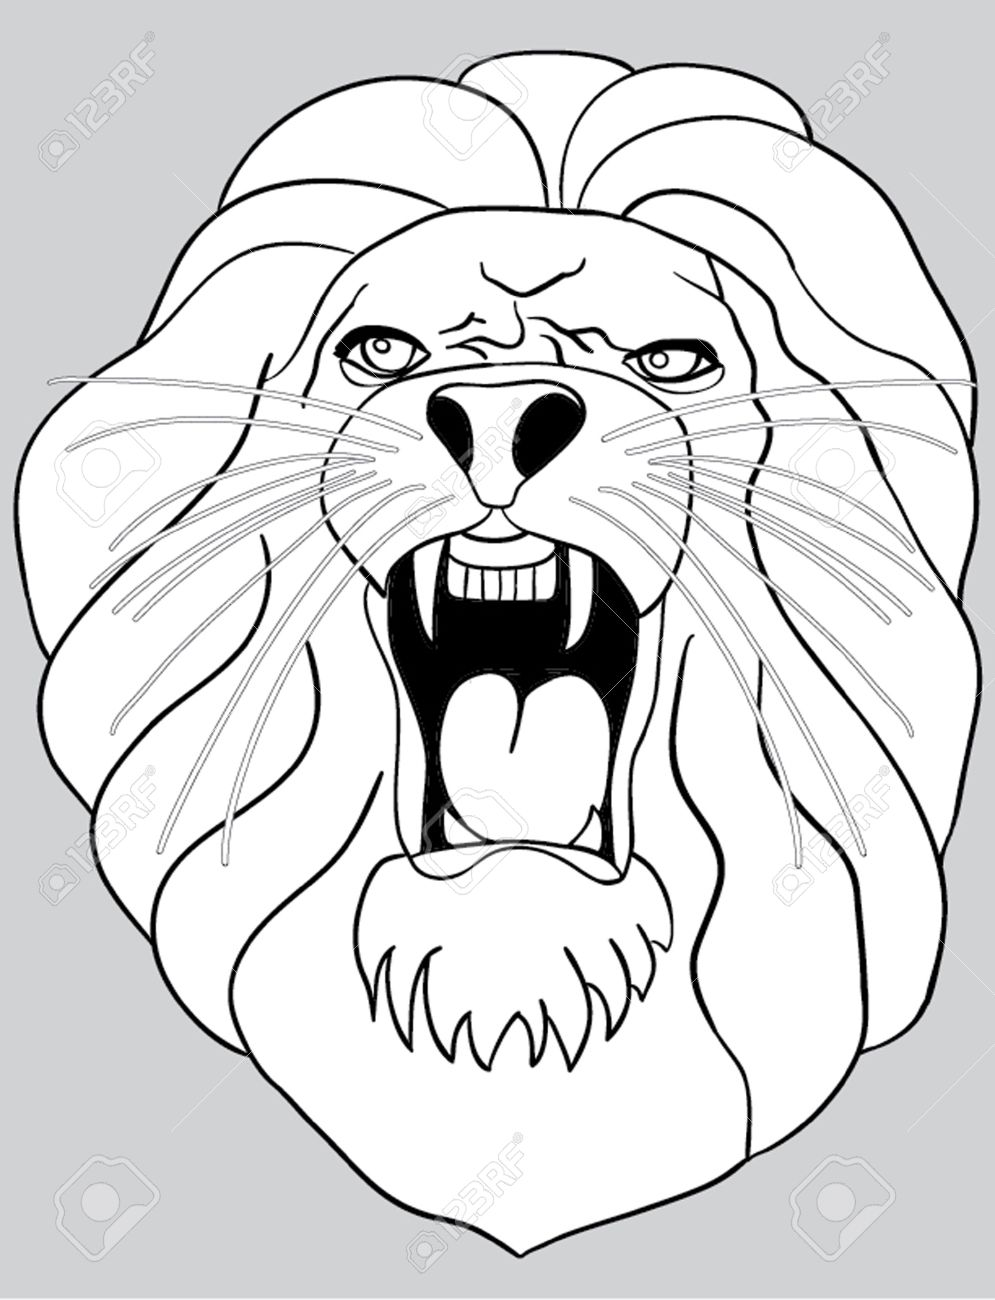 How To Draw A Cartoon Lion Mouth